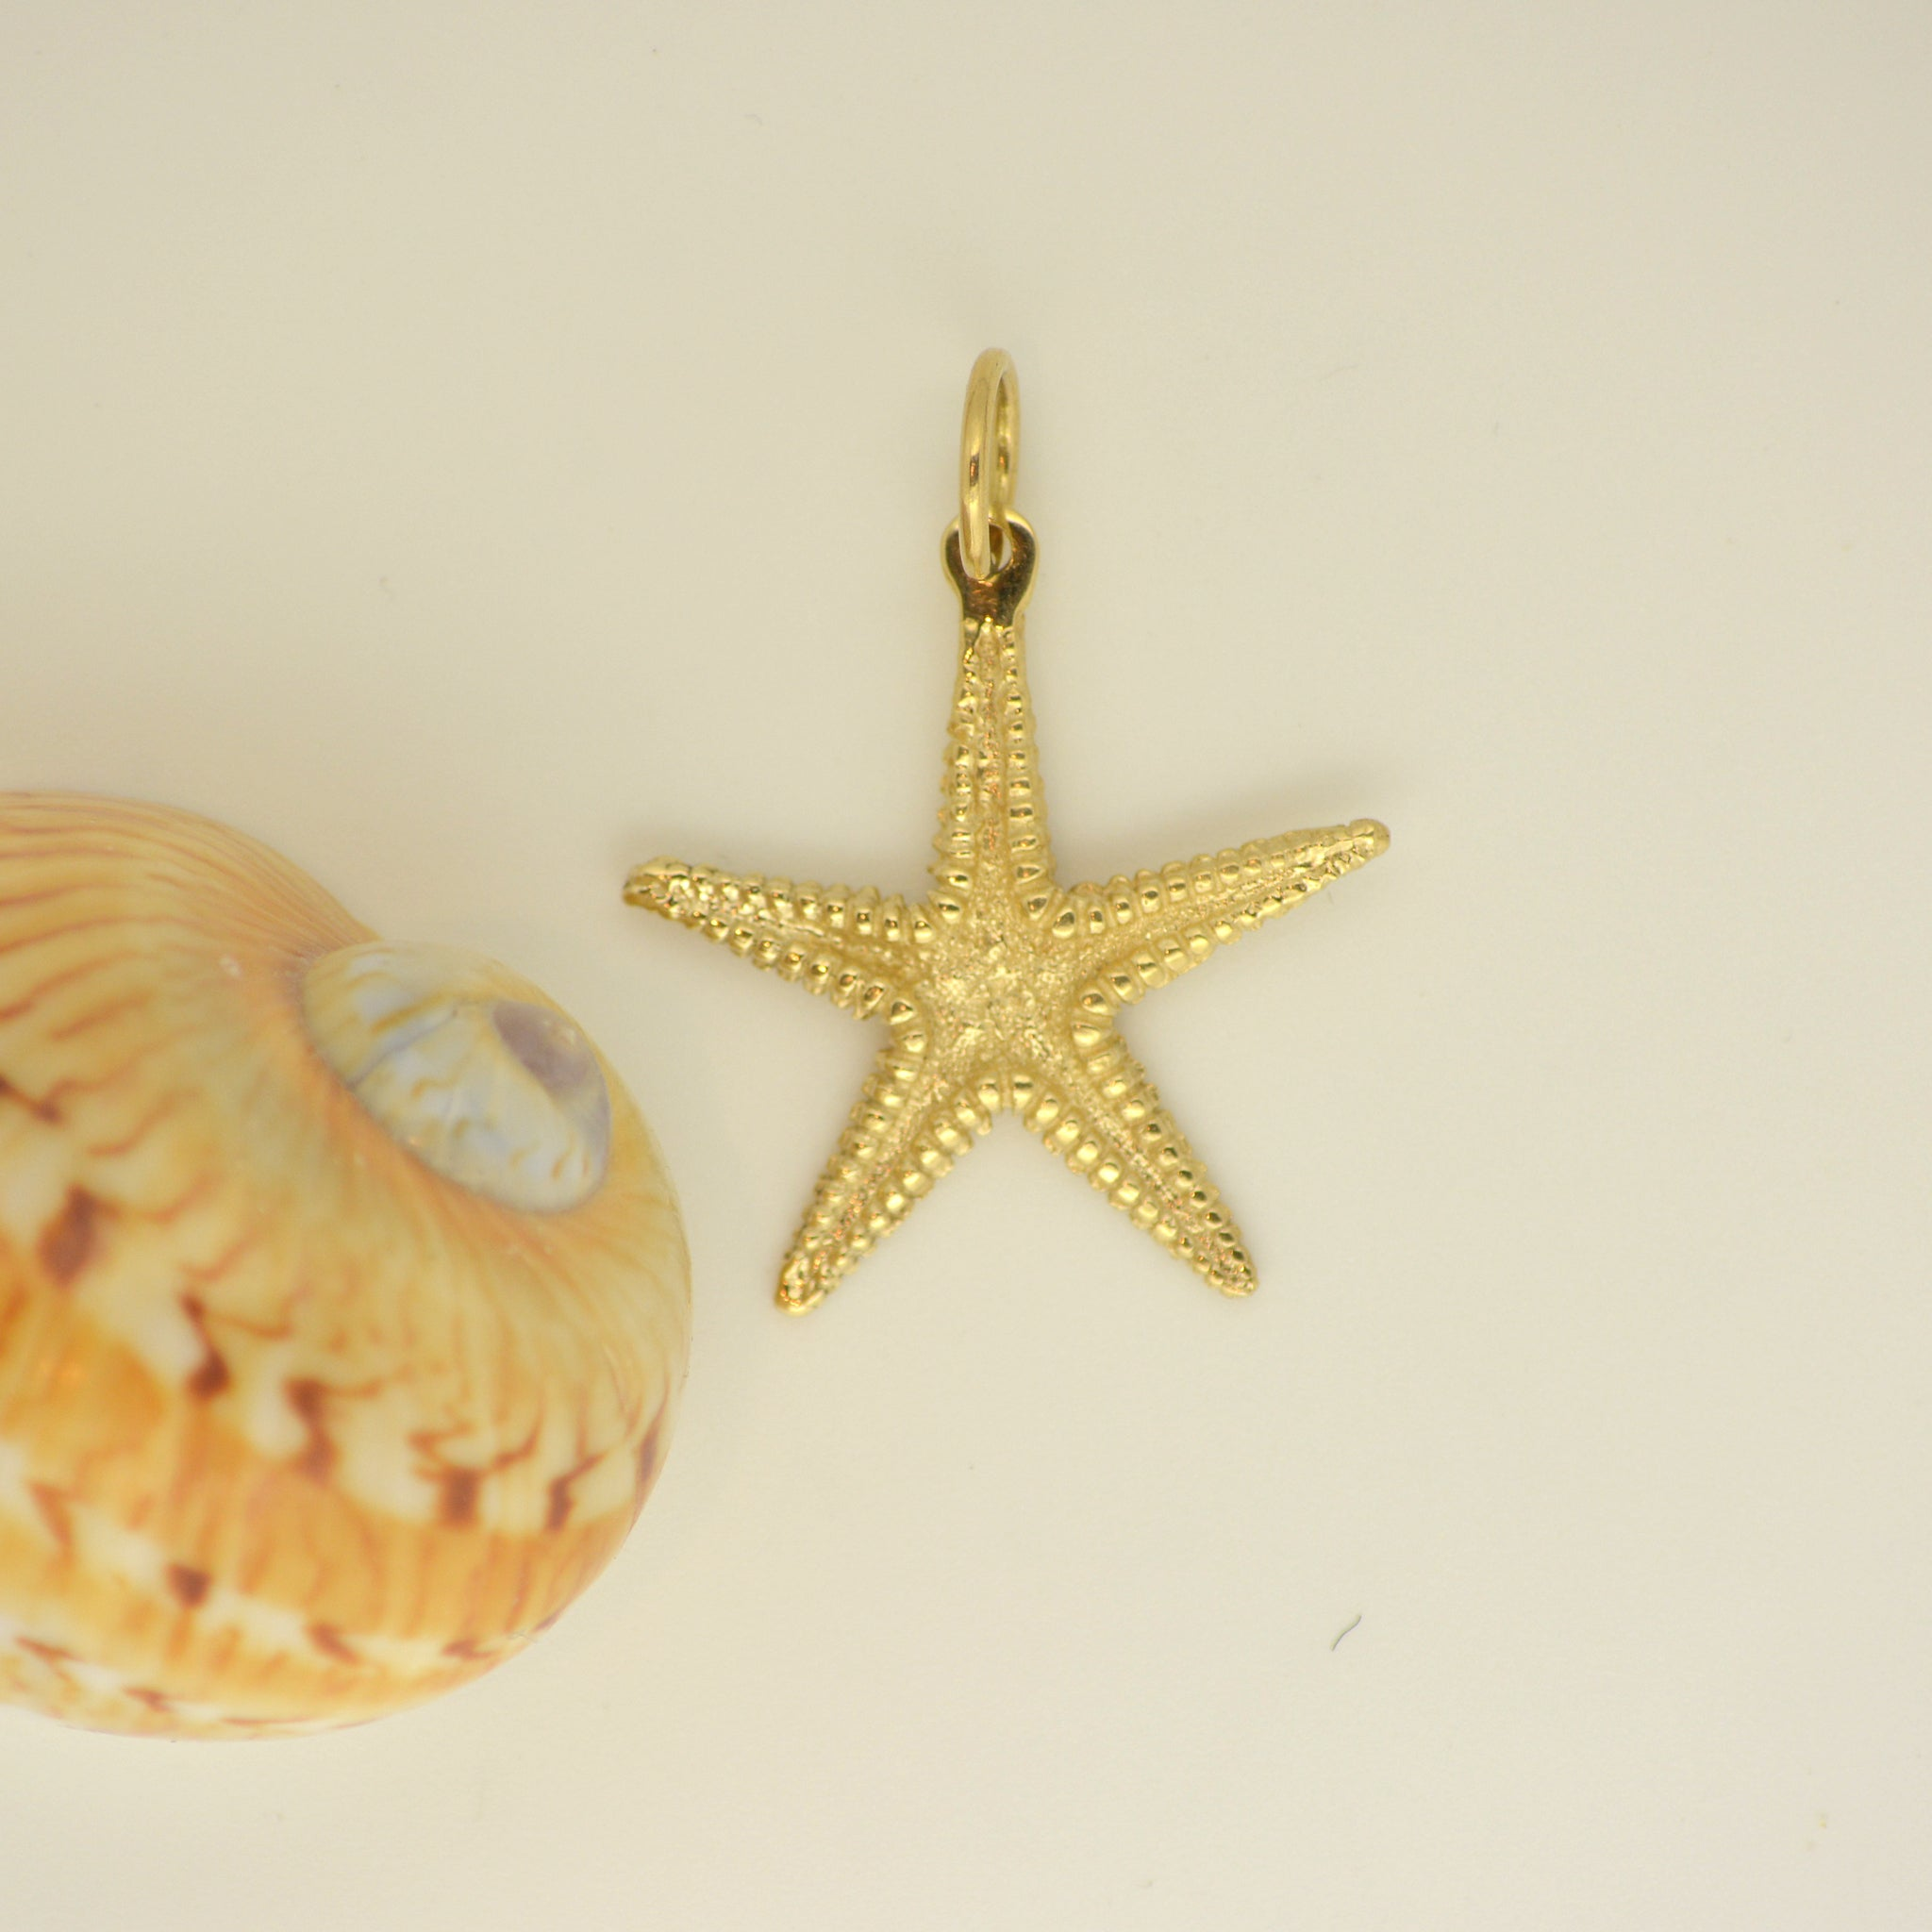 14K Gold Starfish pendant